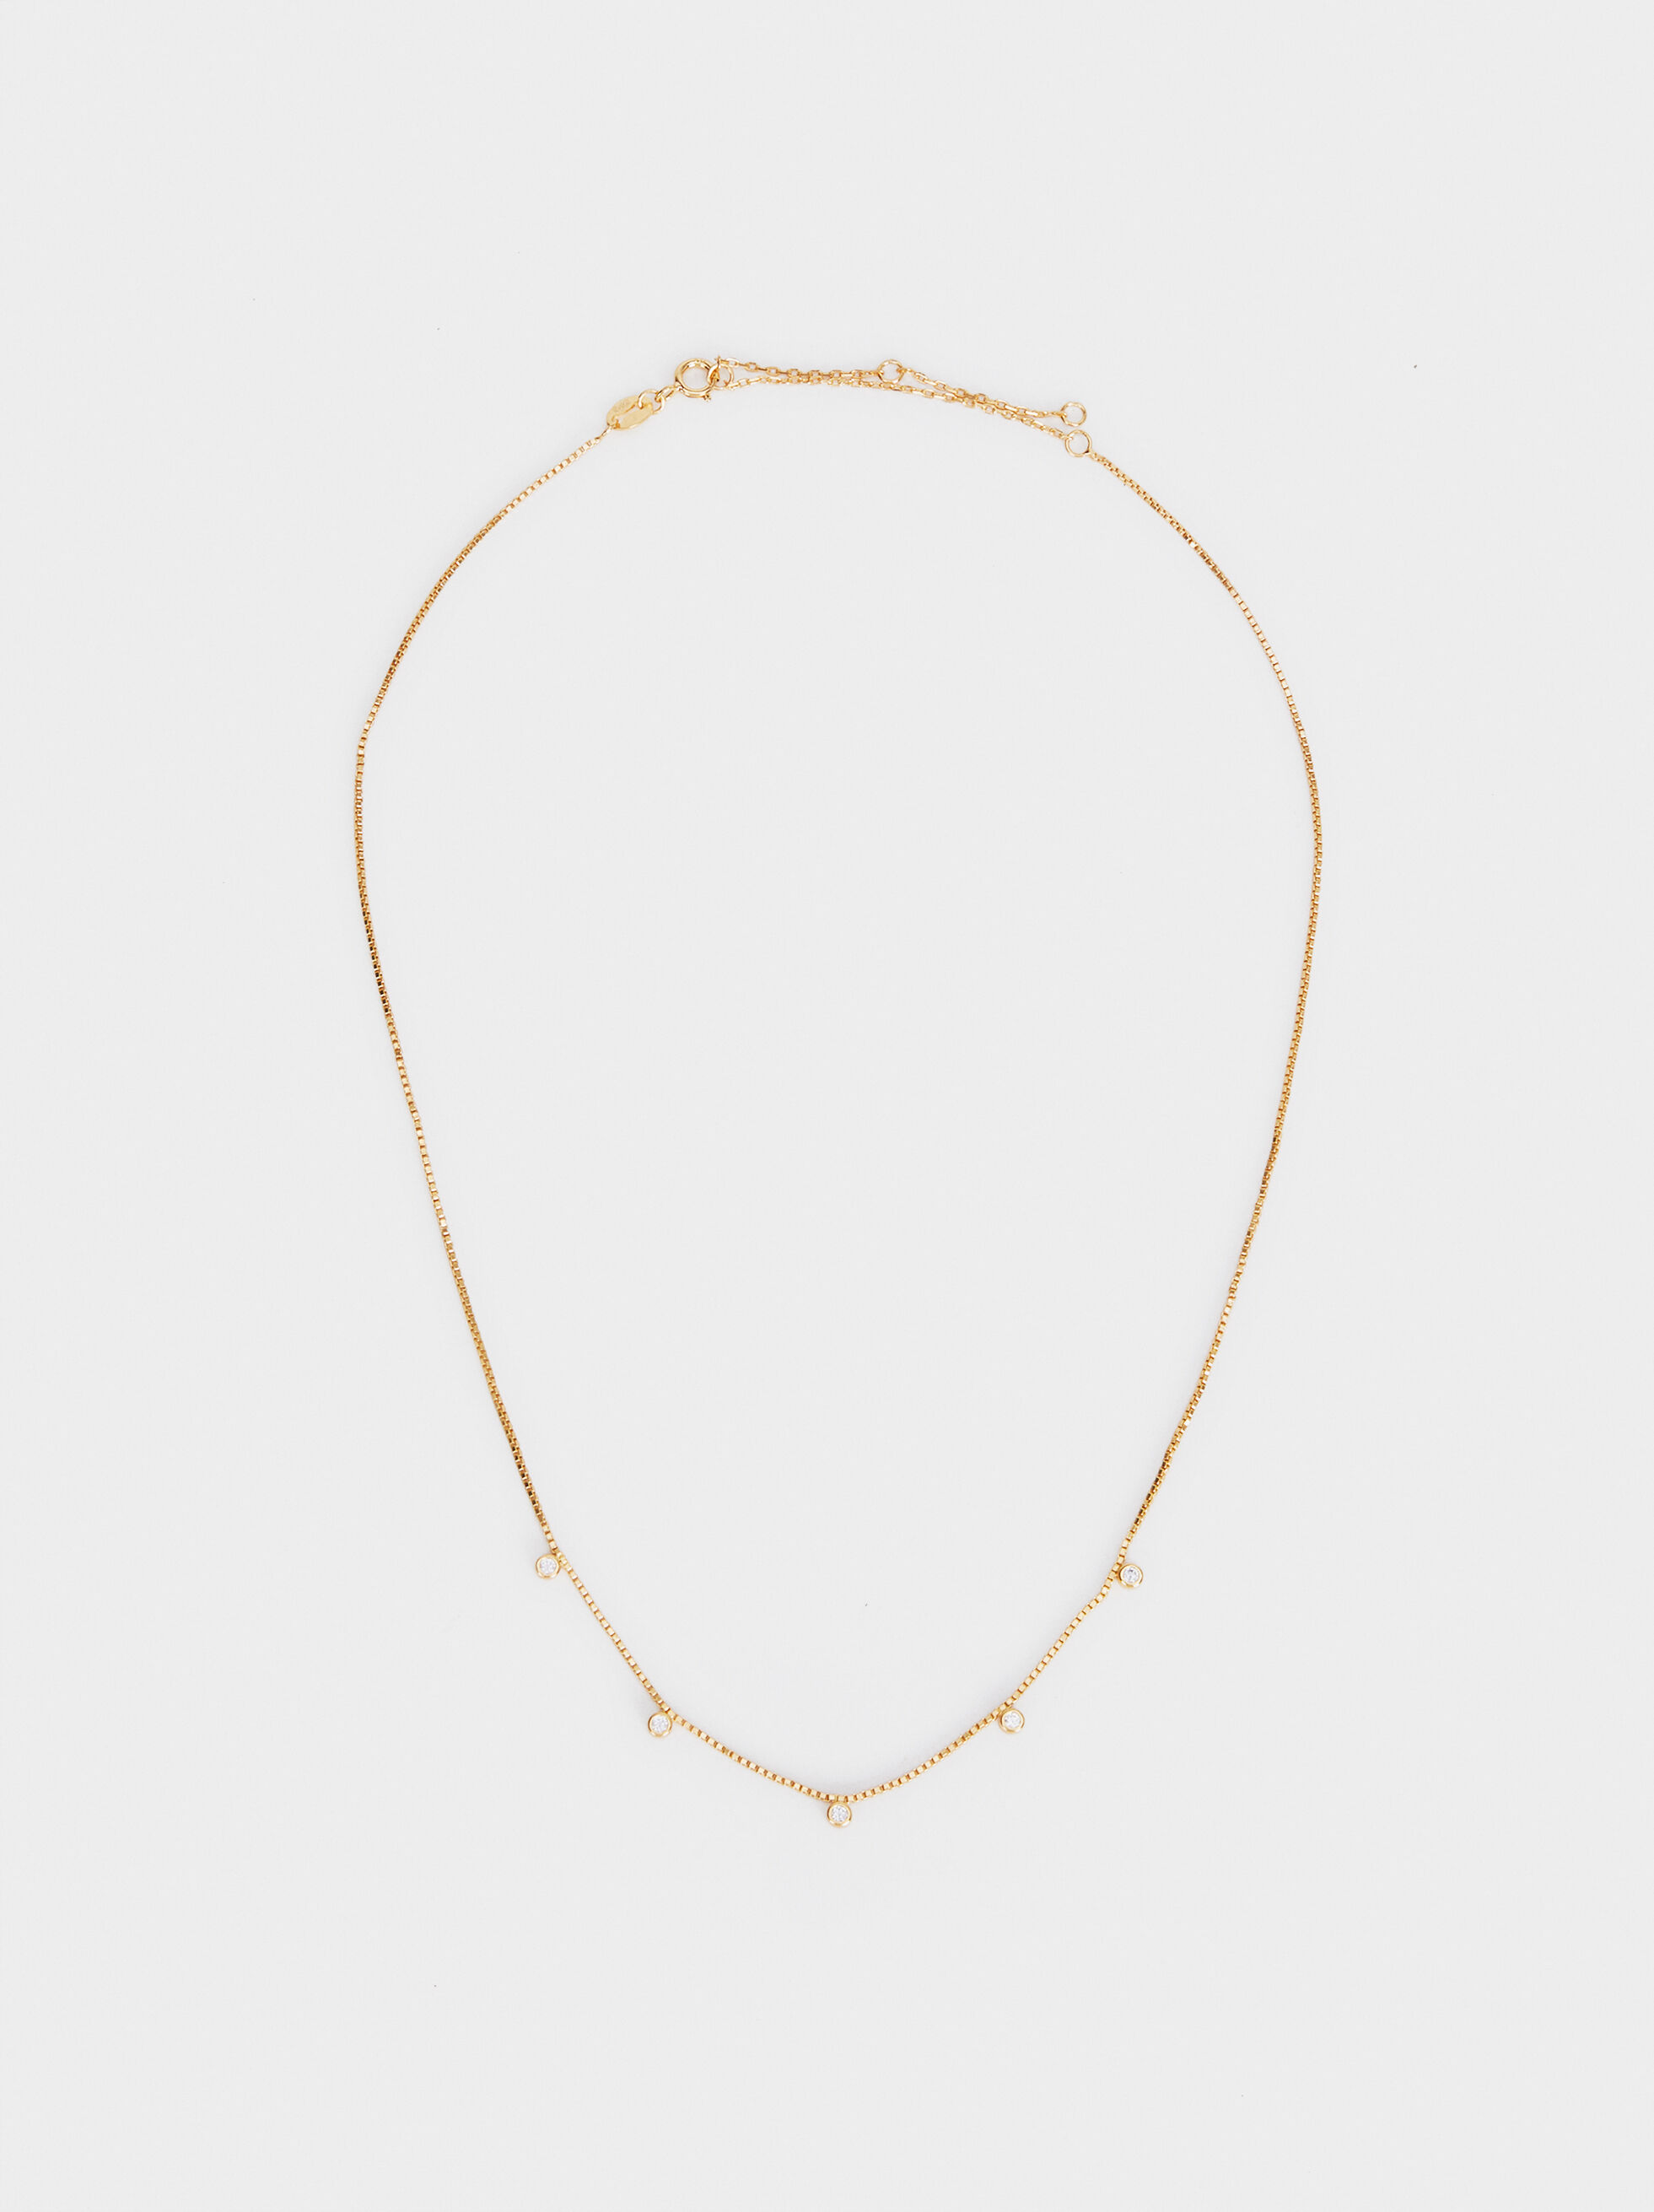 Short 925 Silver Necklace With Rhinestones, Golden, hi-res